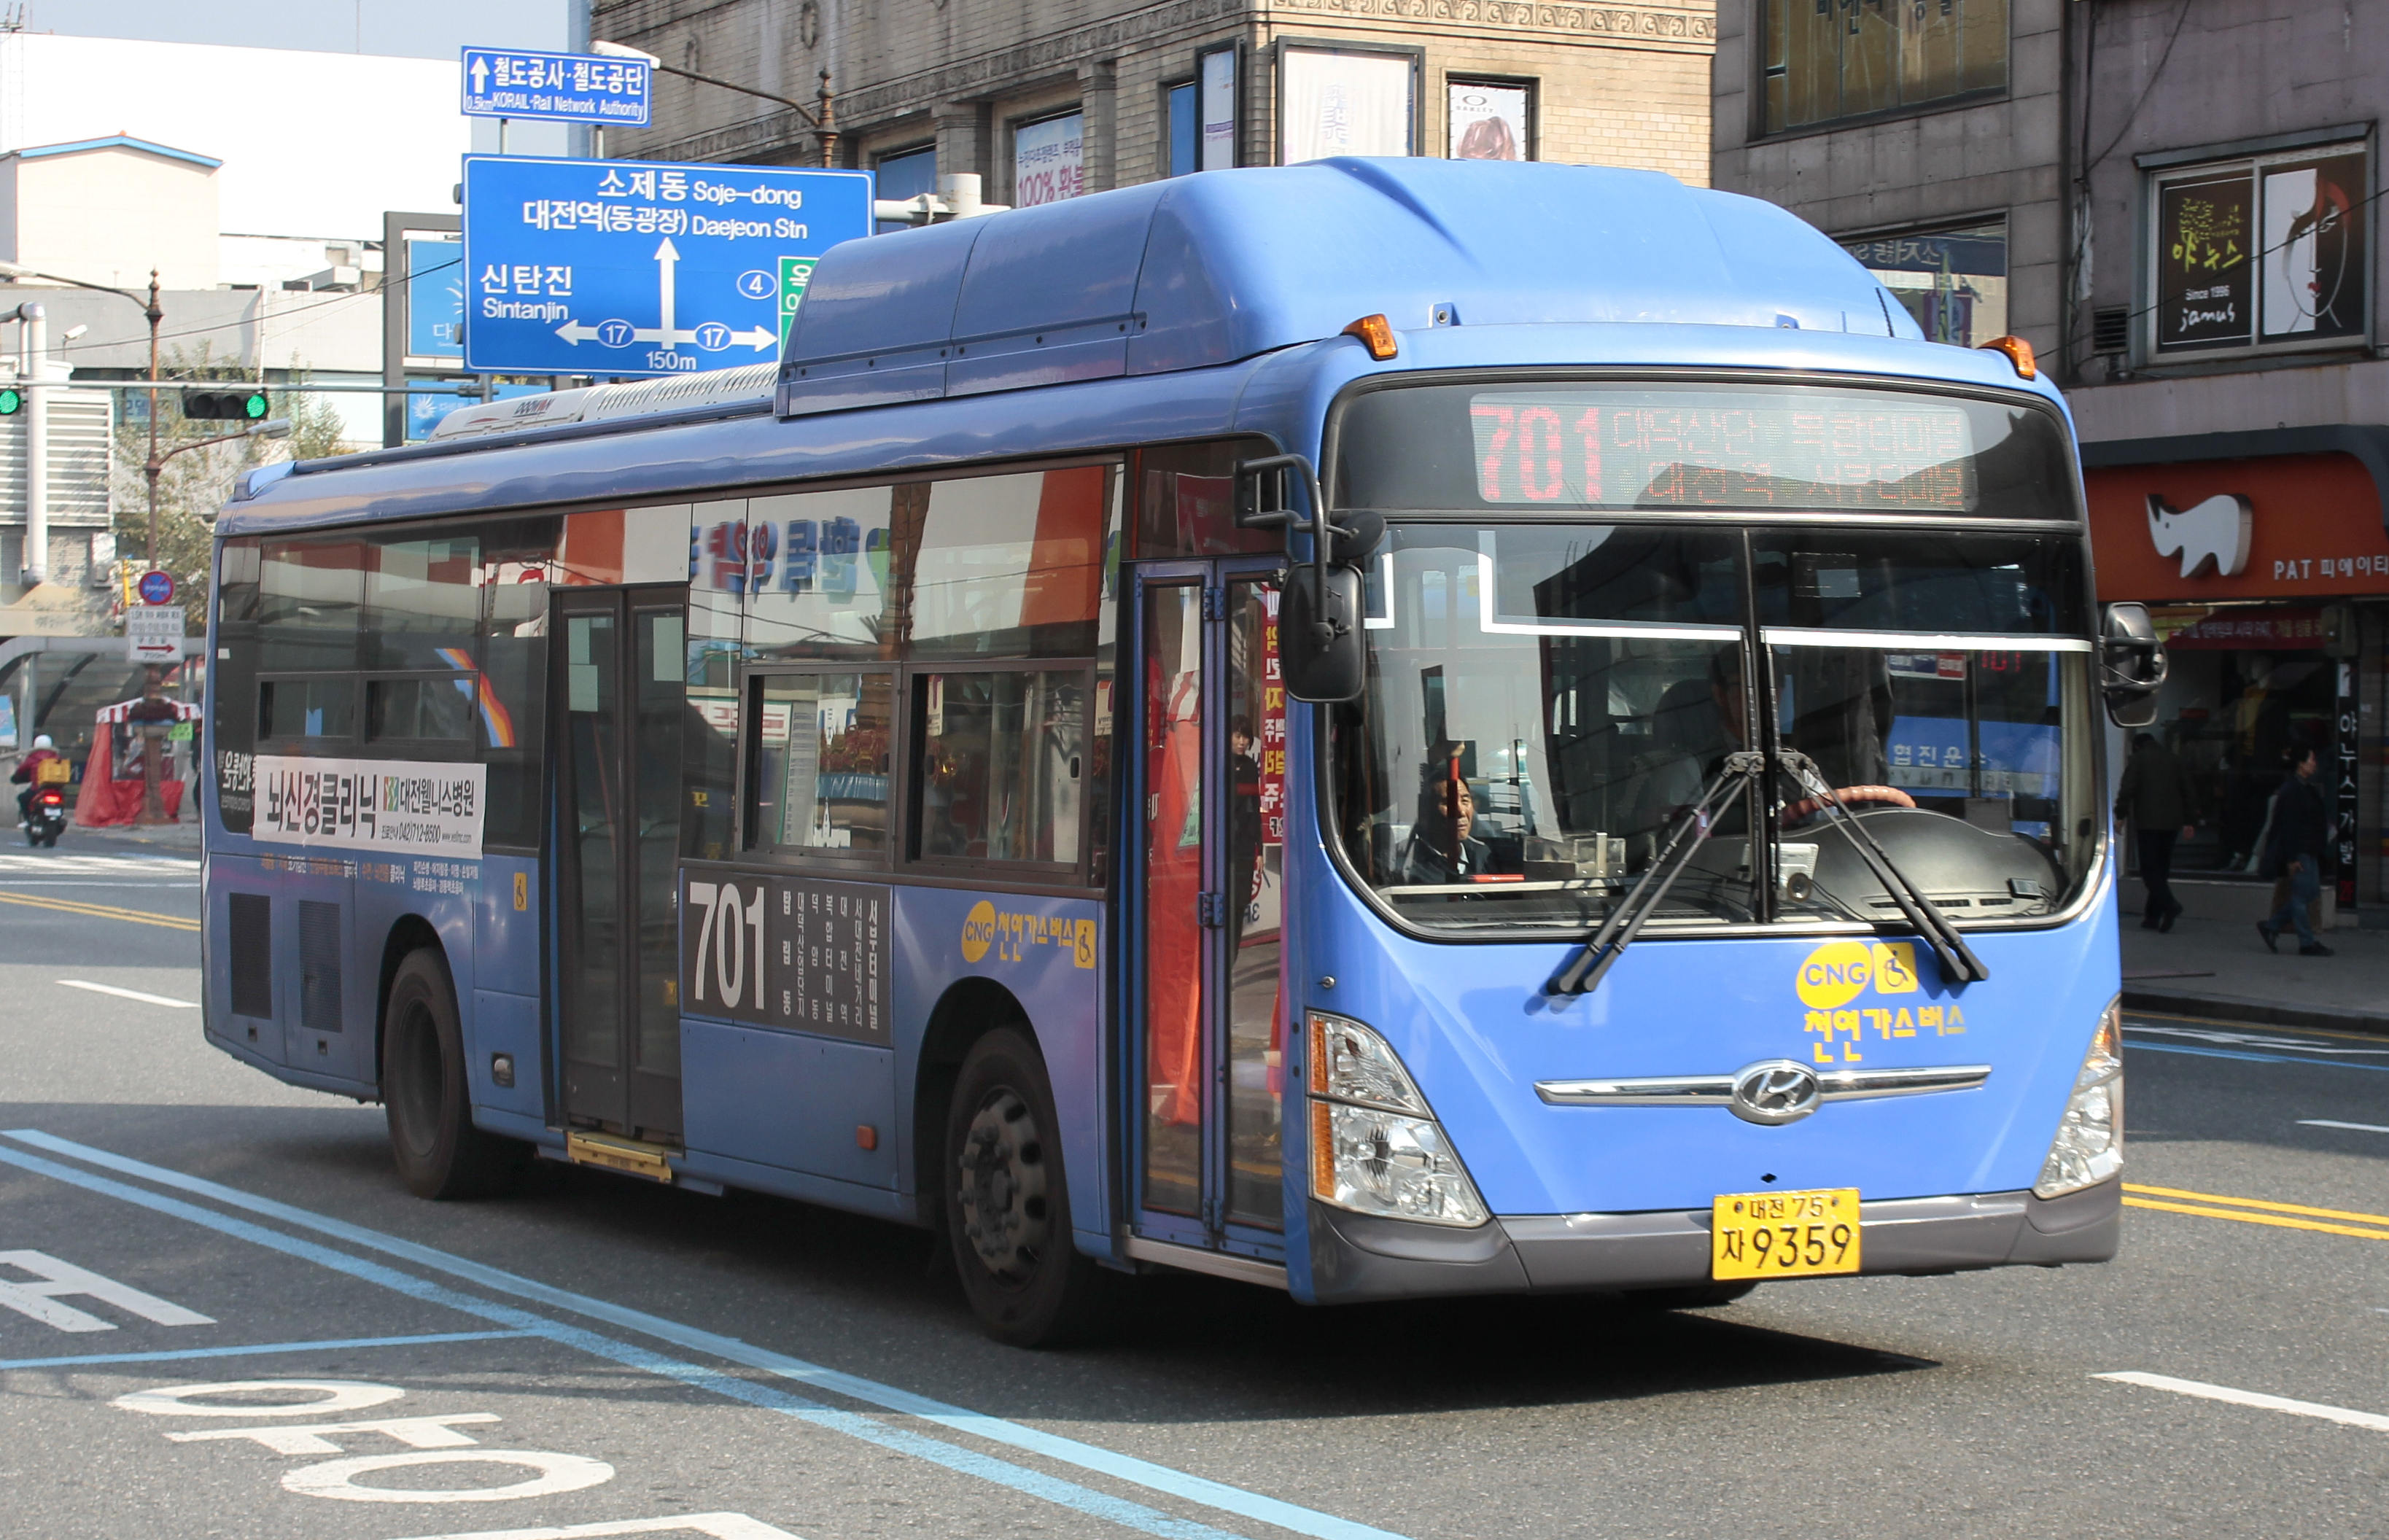 file:daejeon bus route 701 - wikimedia commons